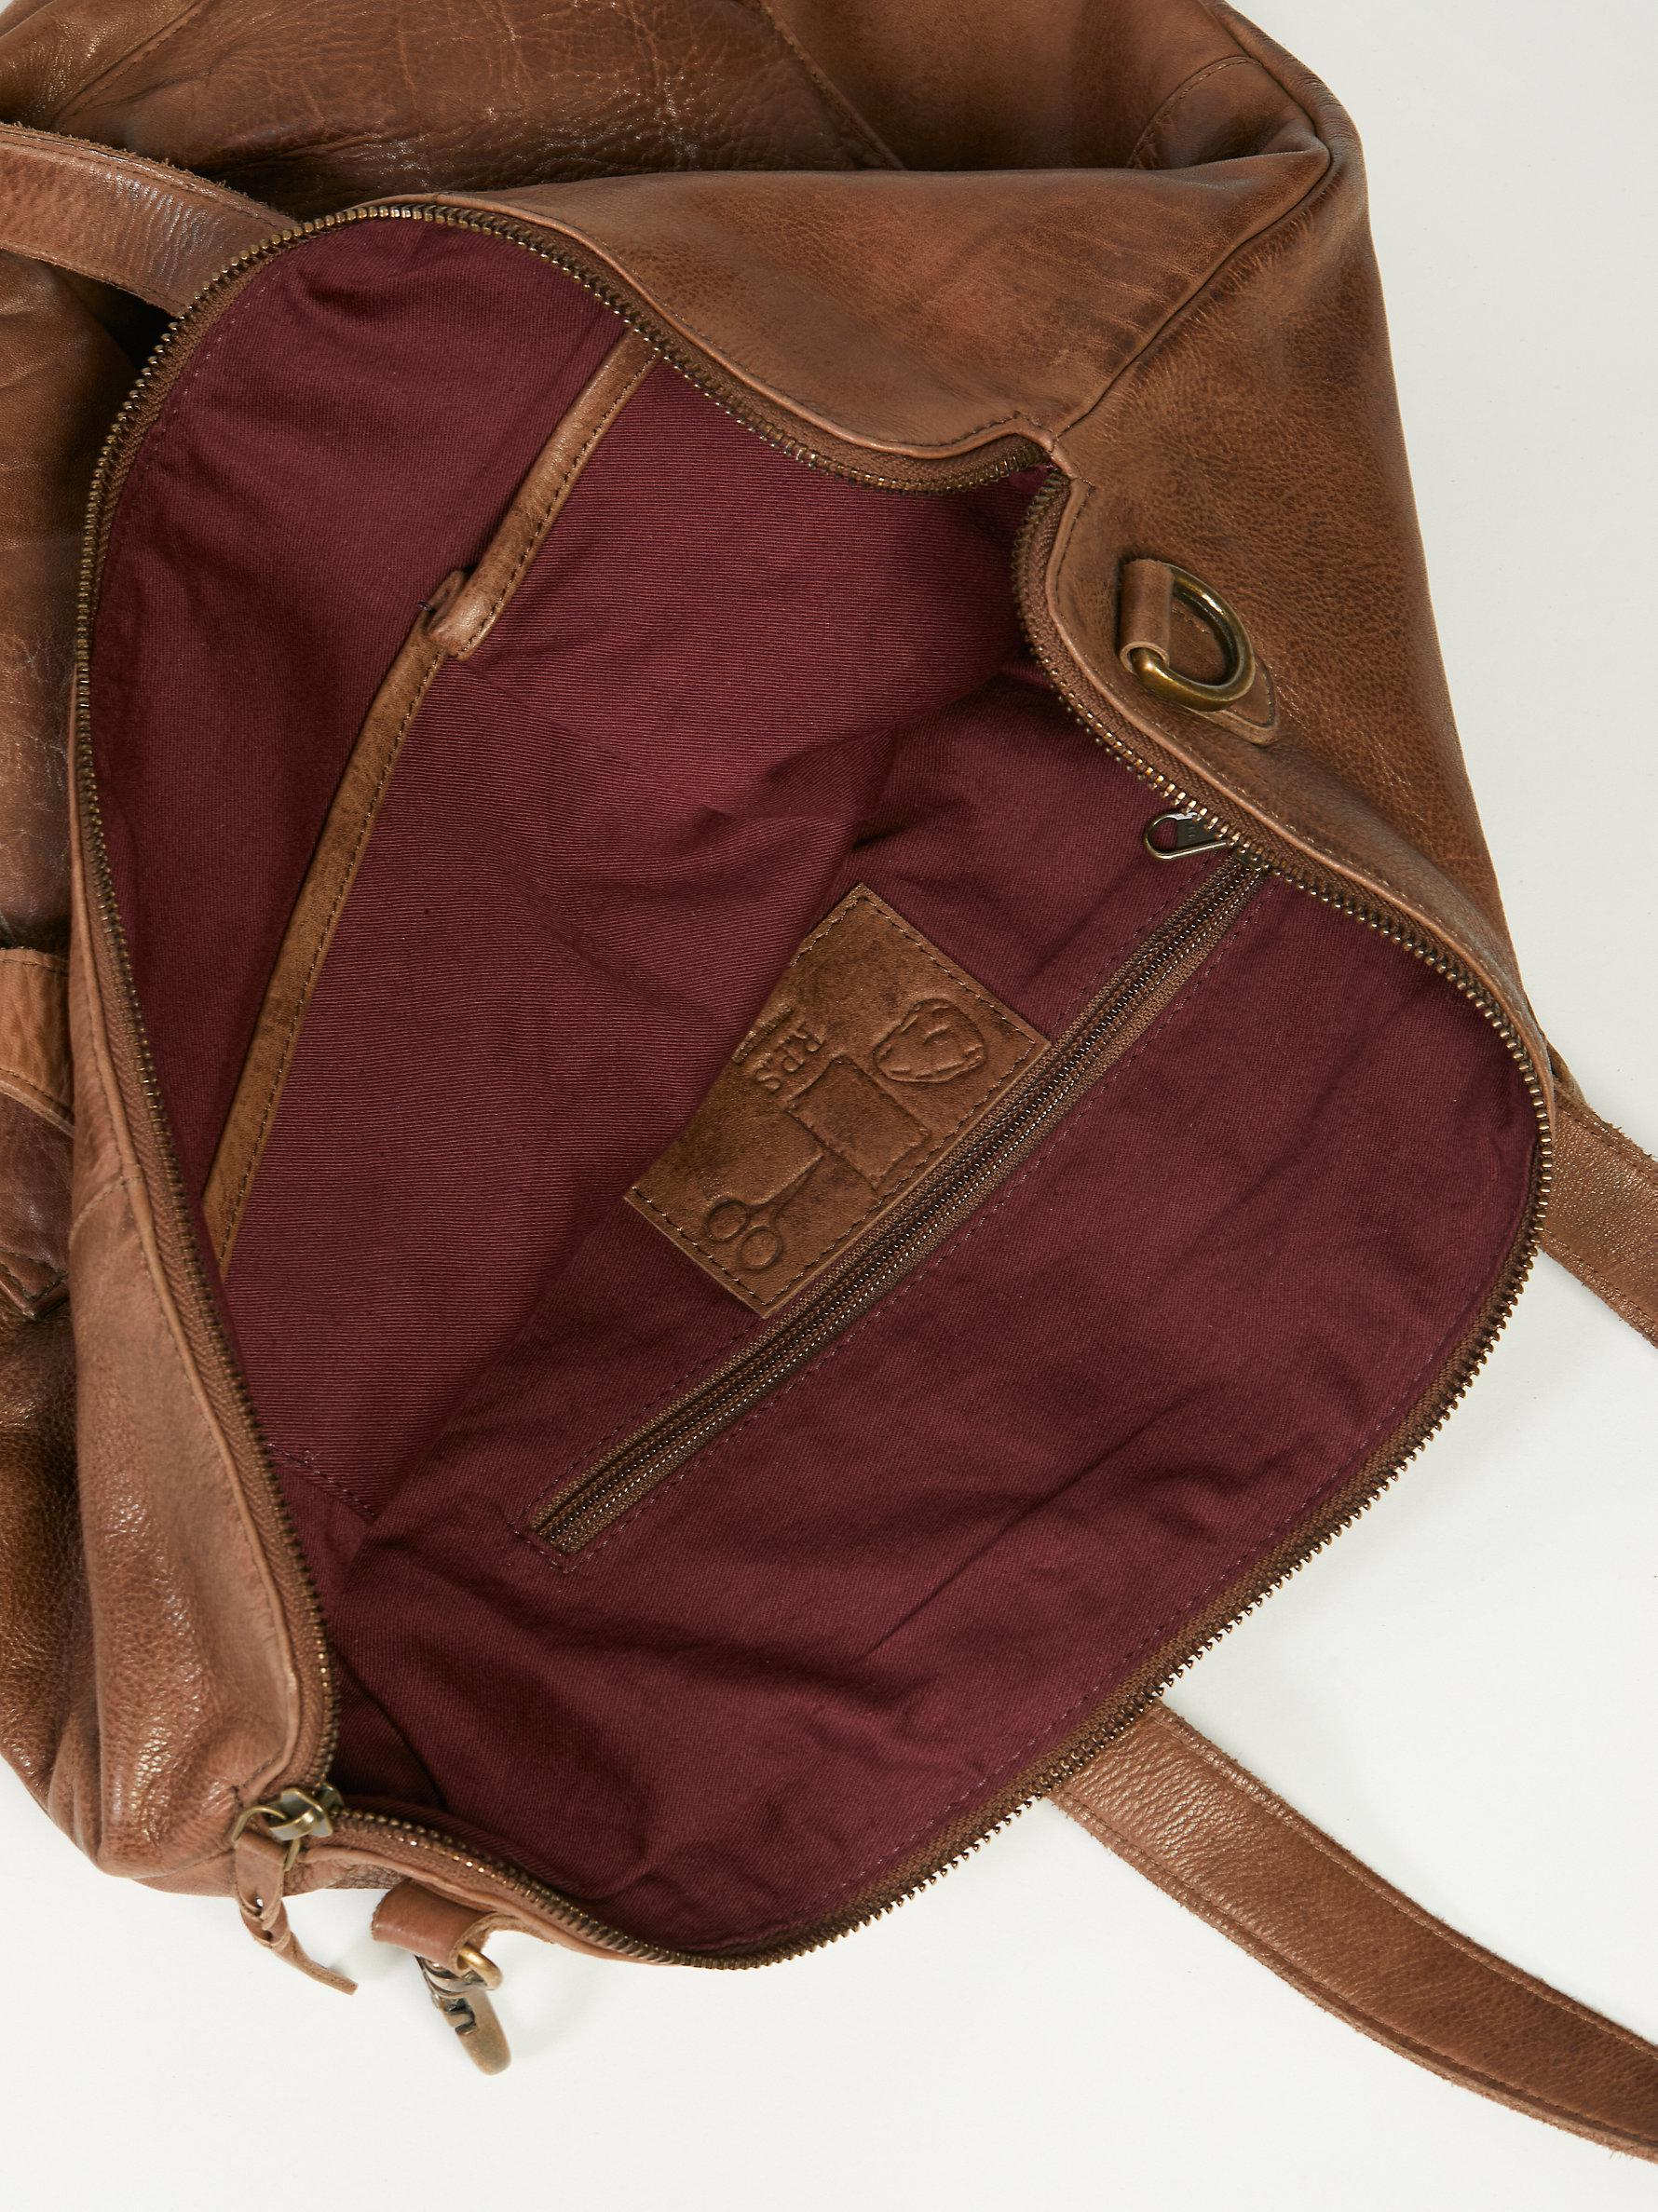 Lyst - Free People Accessories Bags Backpacks   Messengers Calista ... 27346f4f26